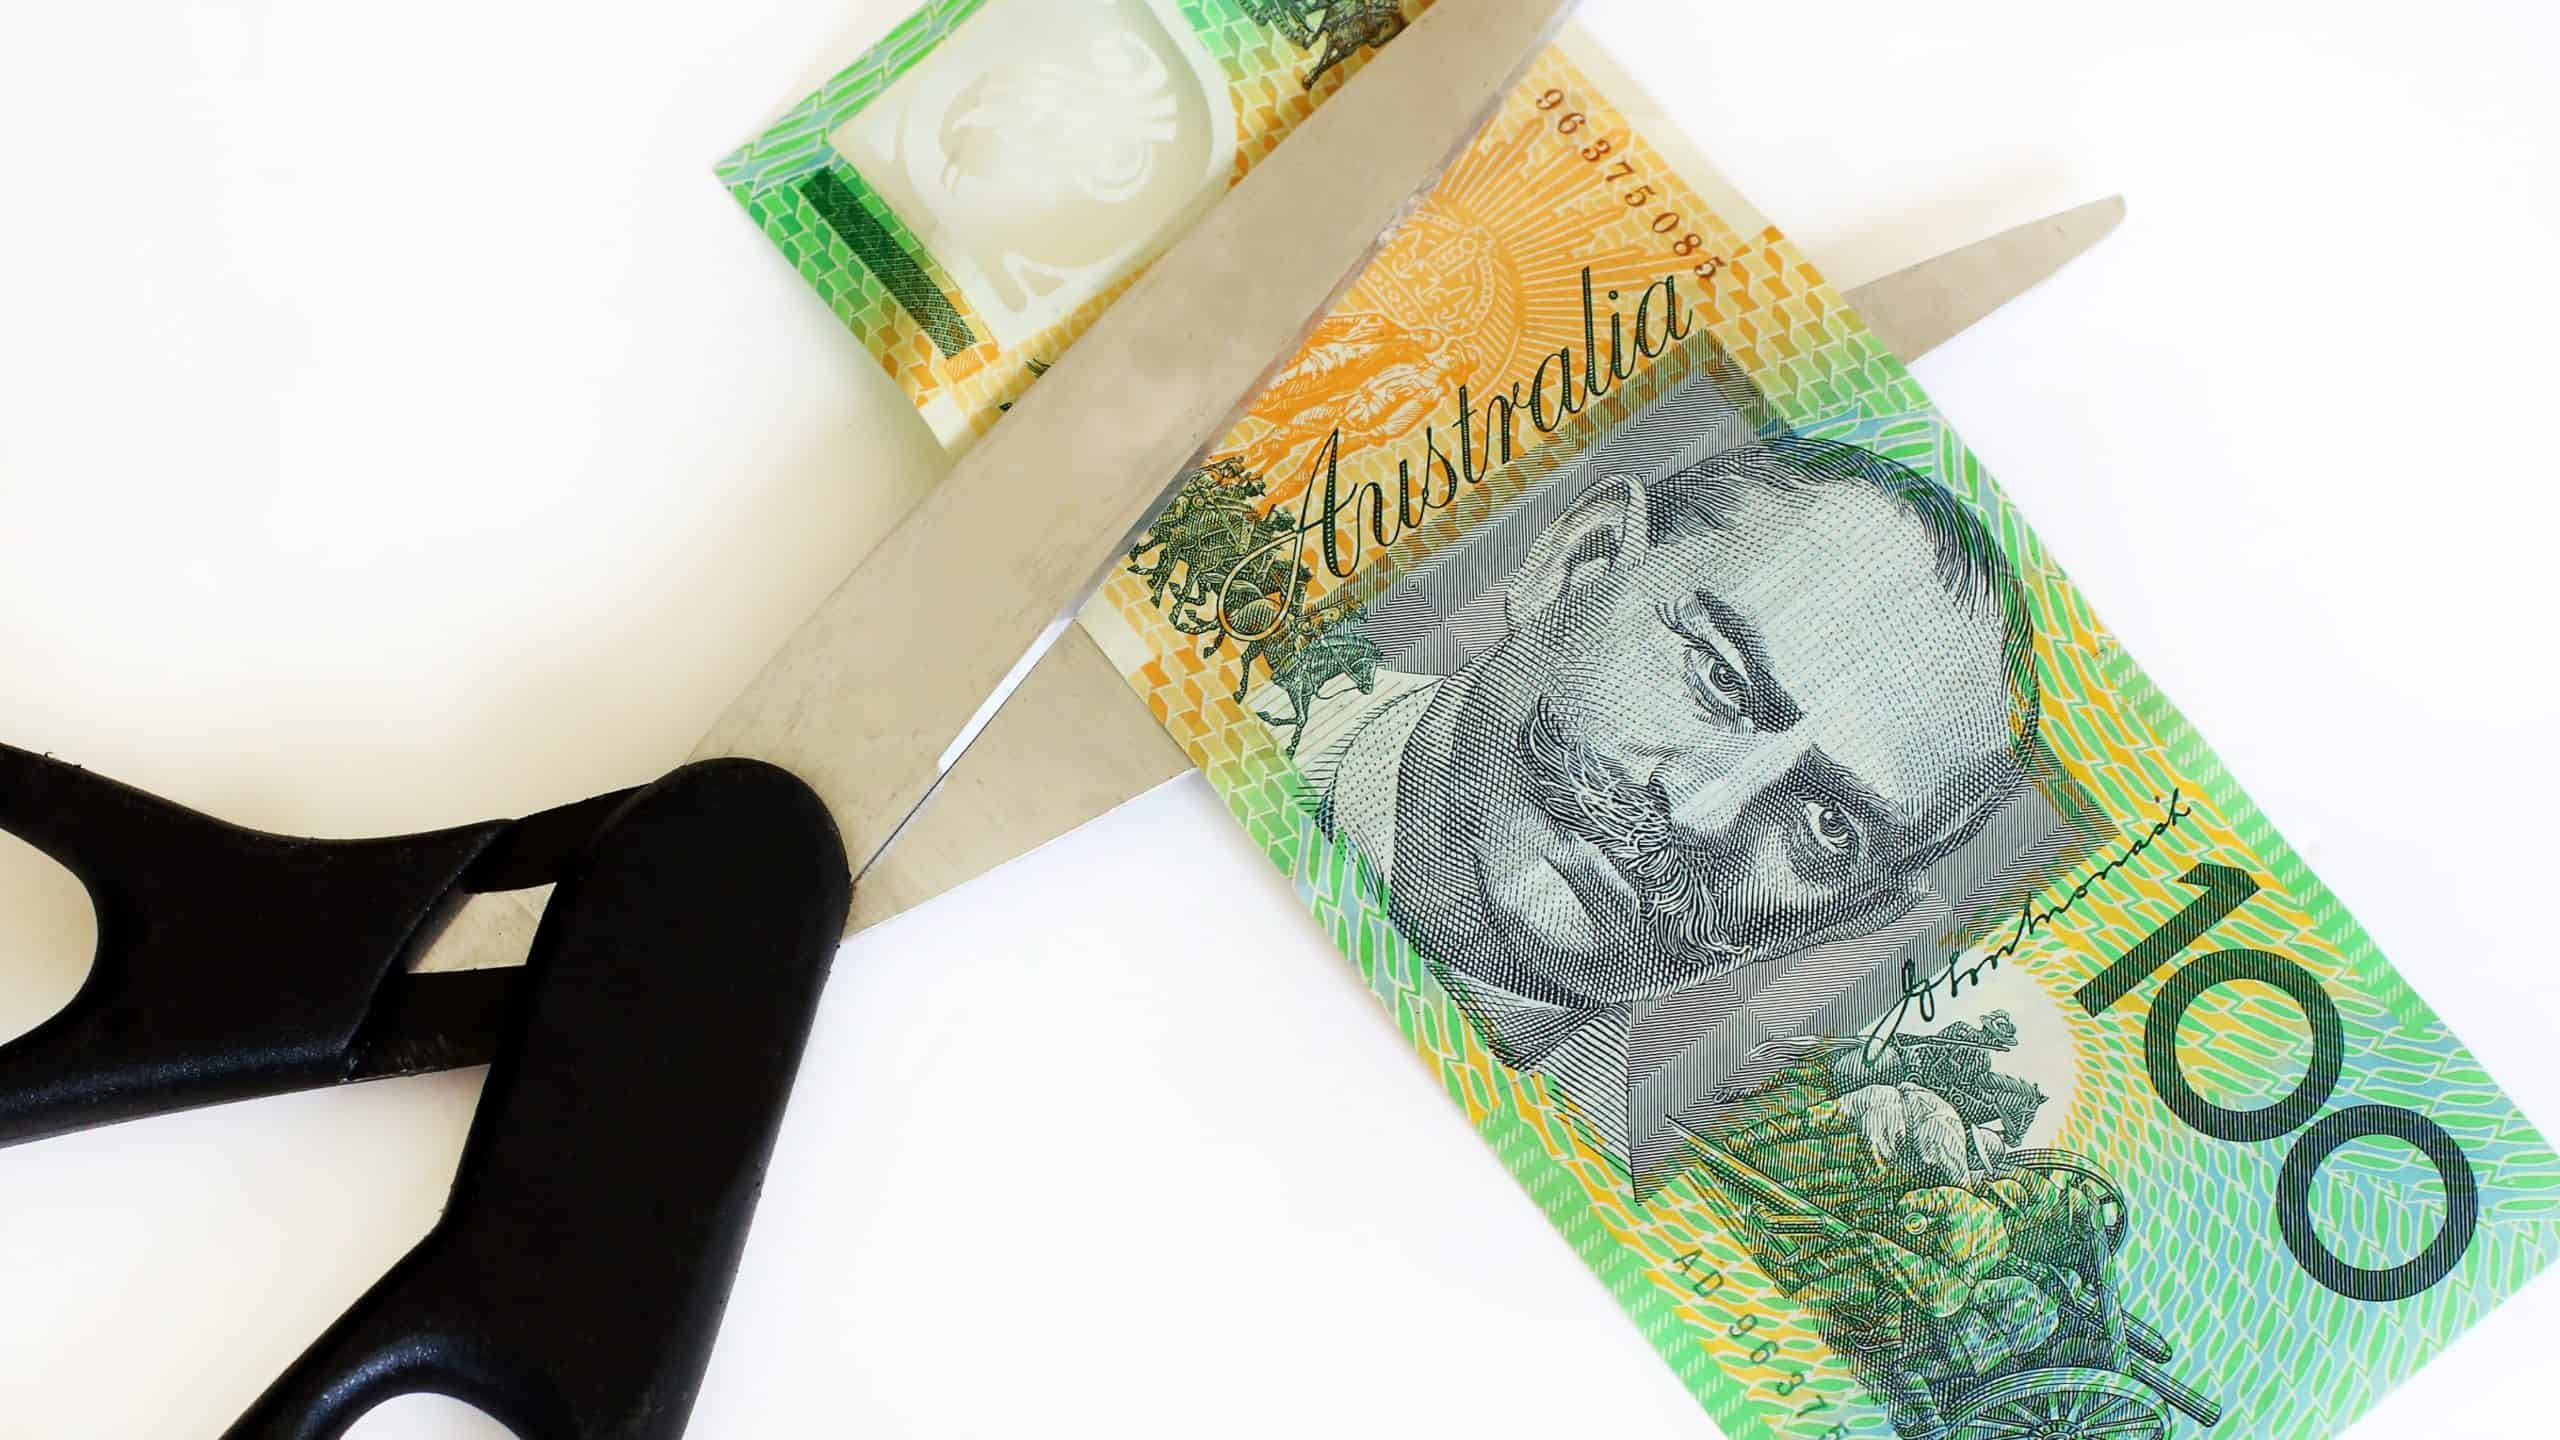 pair of scissors cutting one hundred dollar note representing cut dividend